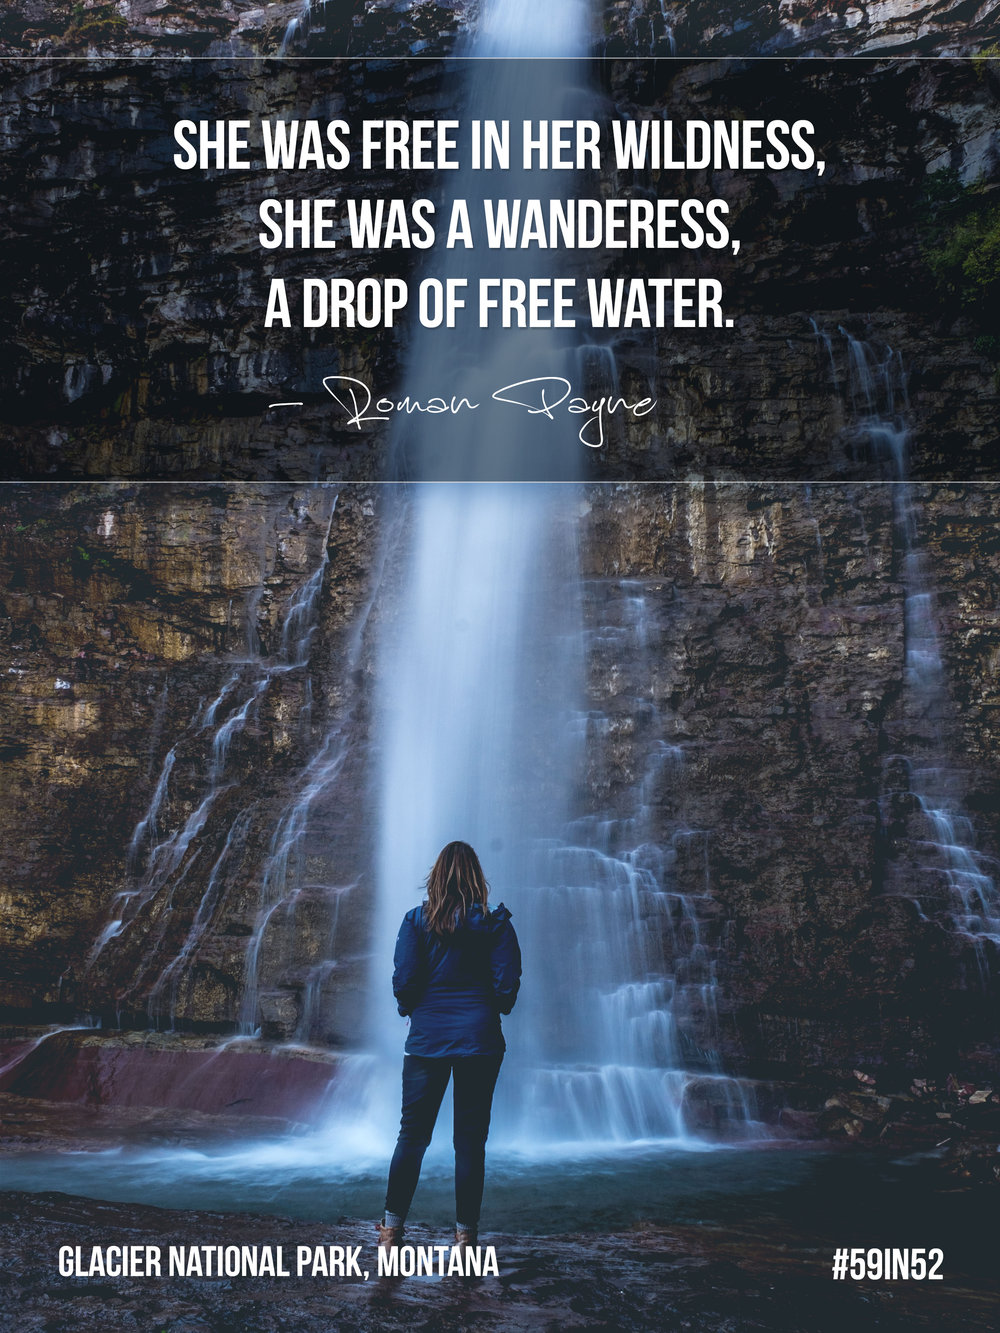 'She was free in her wildness, she was a Wanderess, a drop of free water.' - Roman Payne, The Wanderess